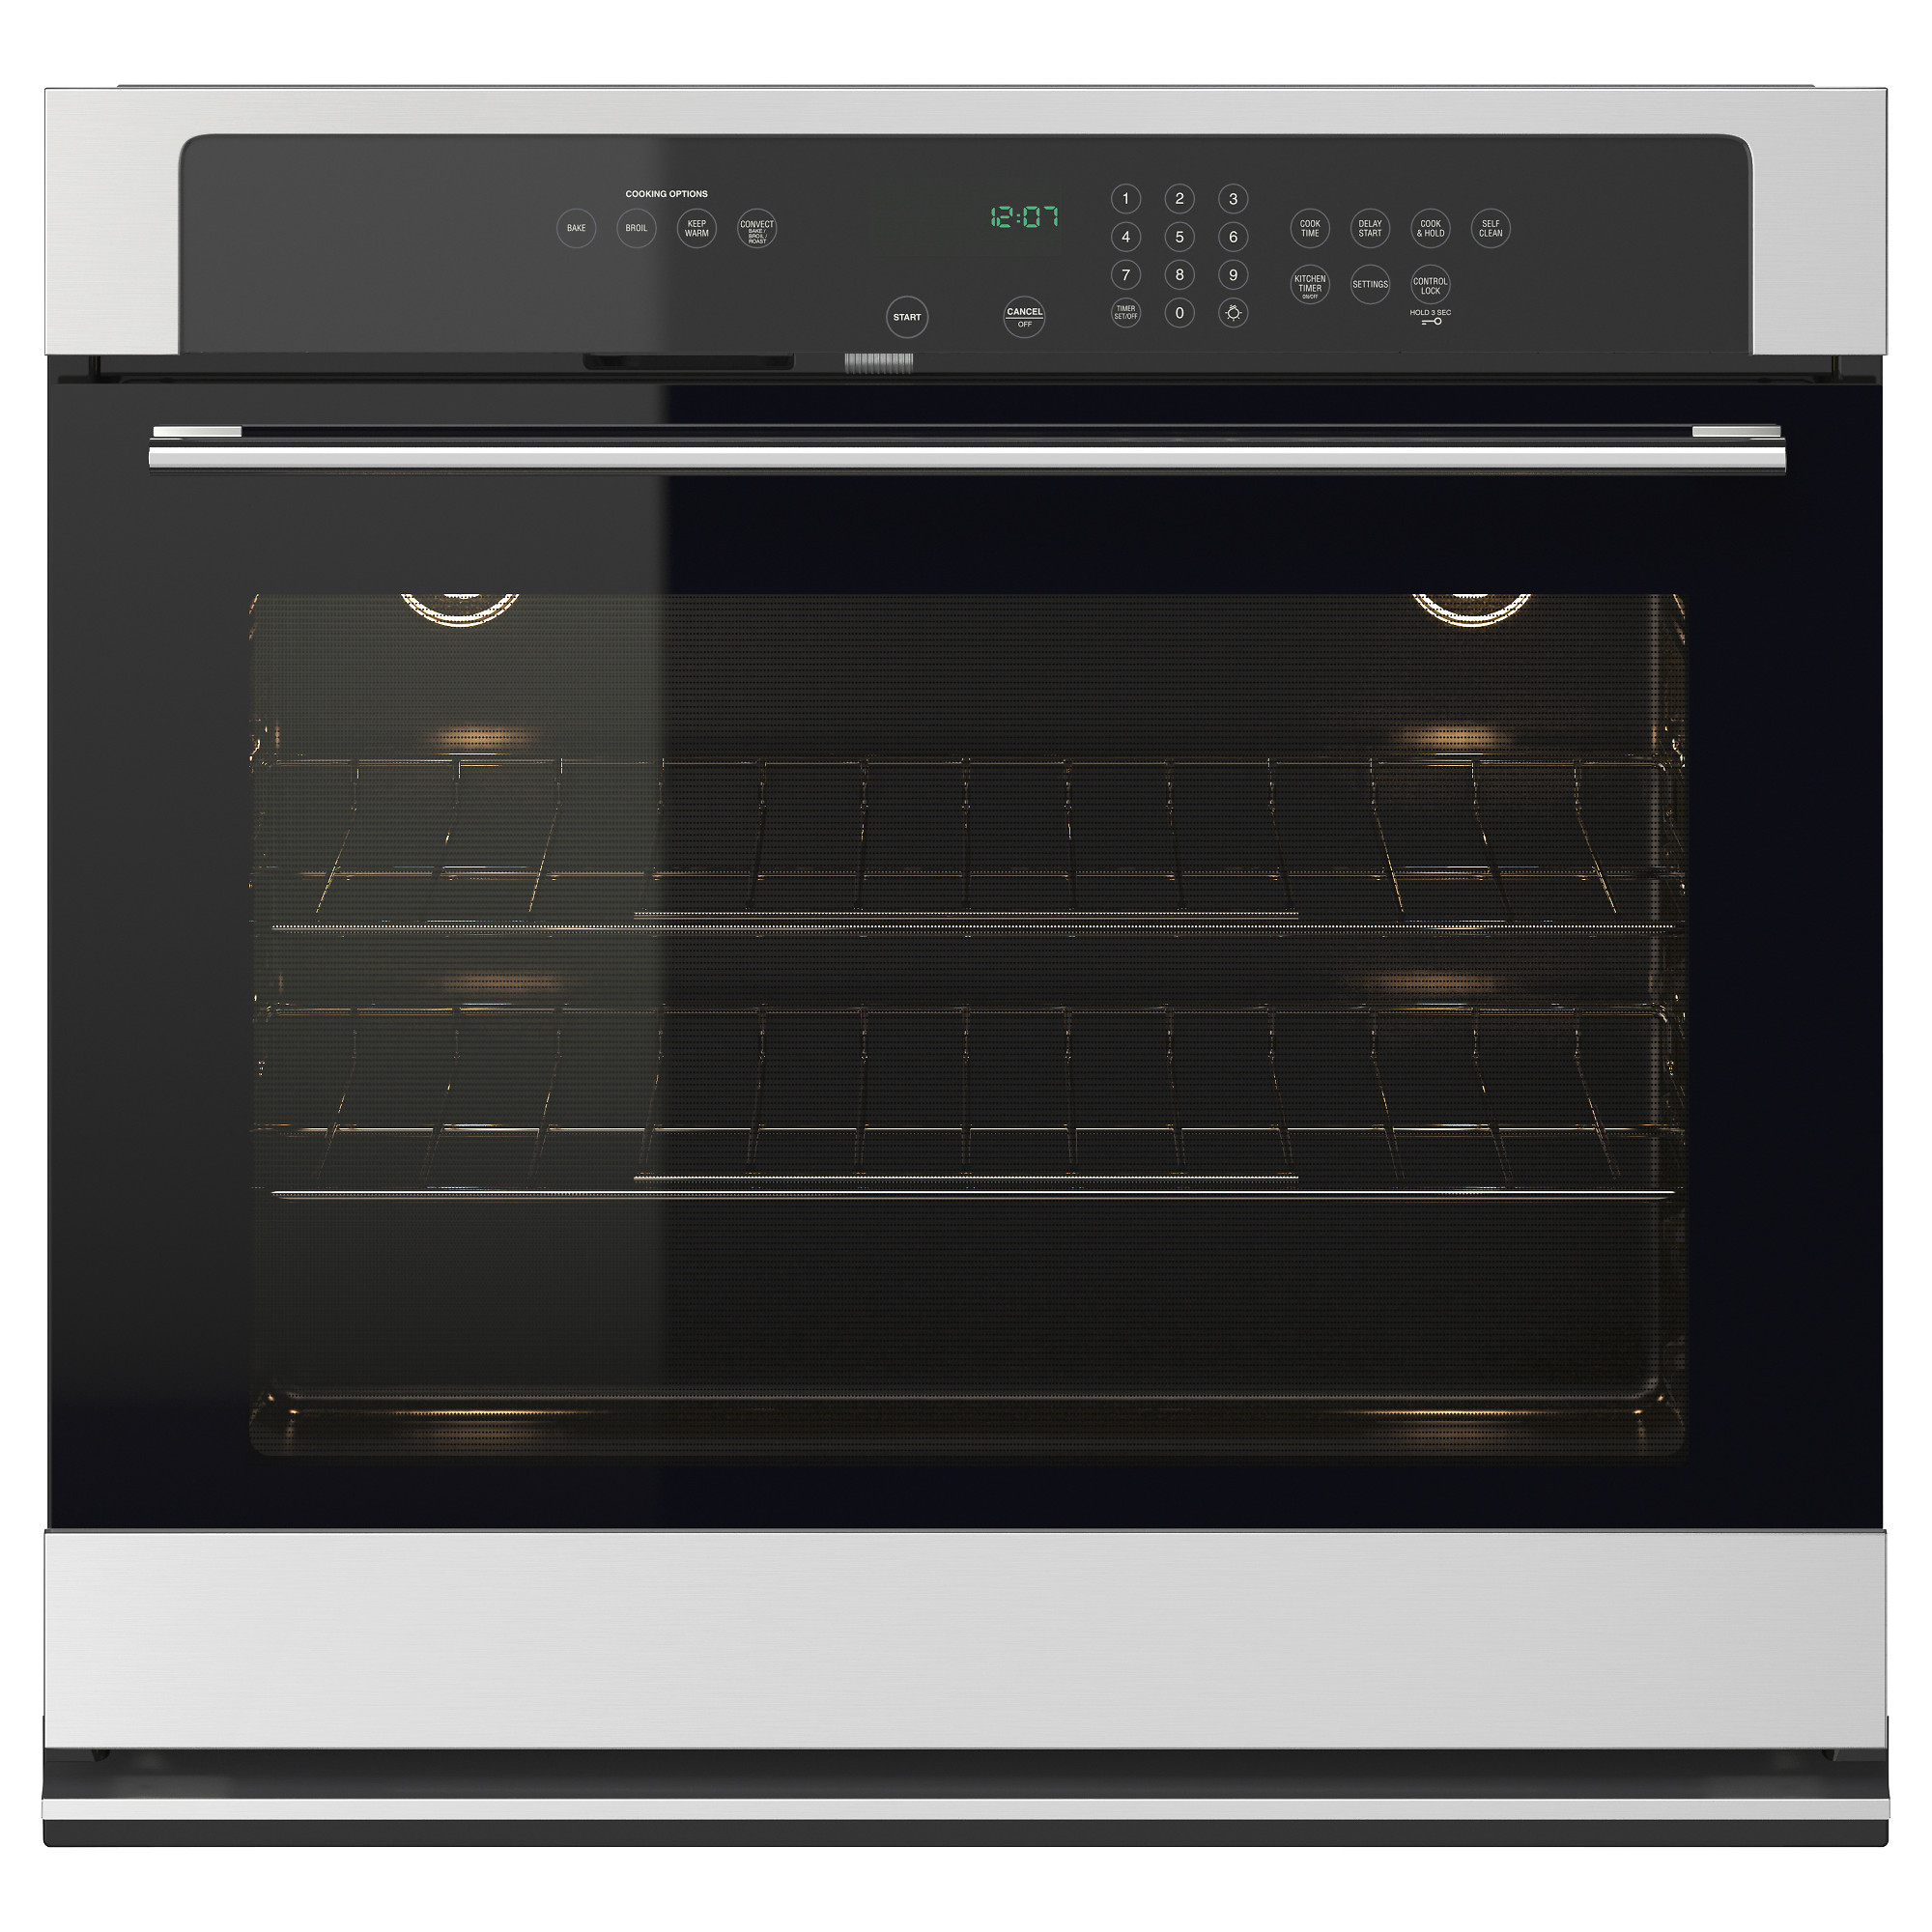 Nutid Thermal Self Cleaning Oven Ikea